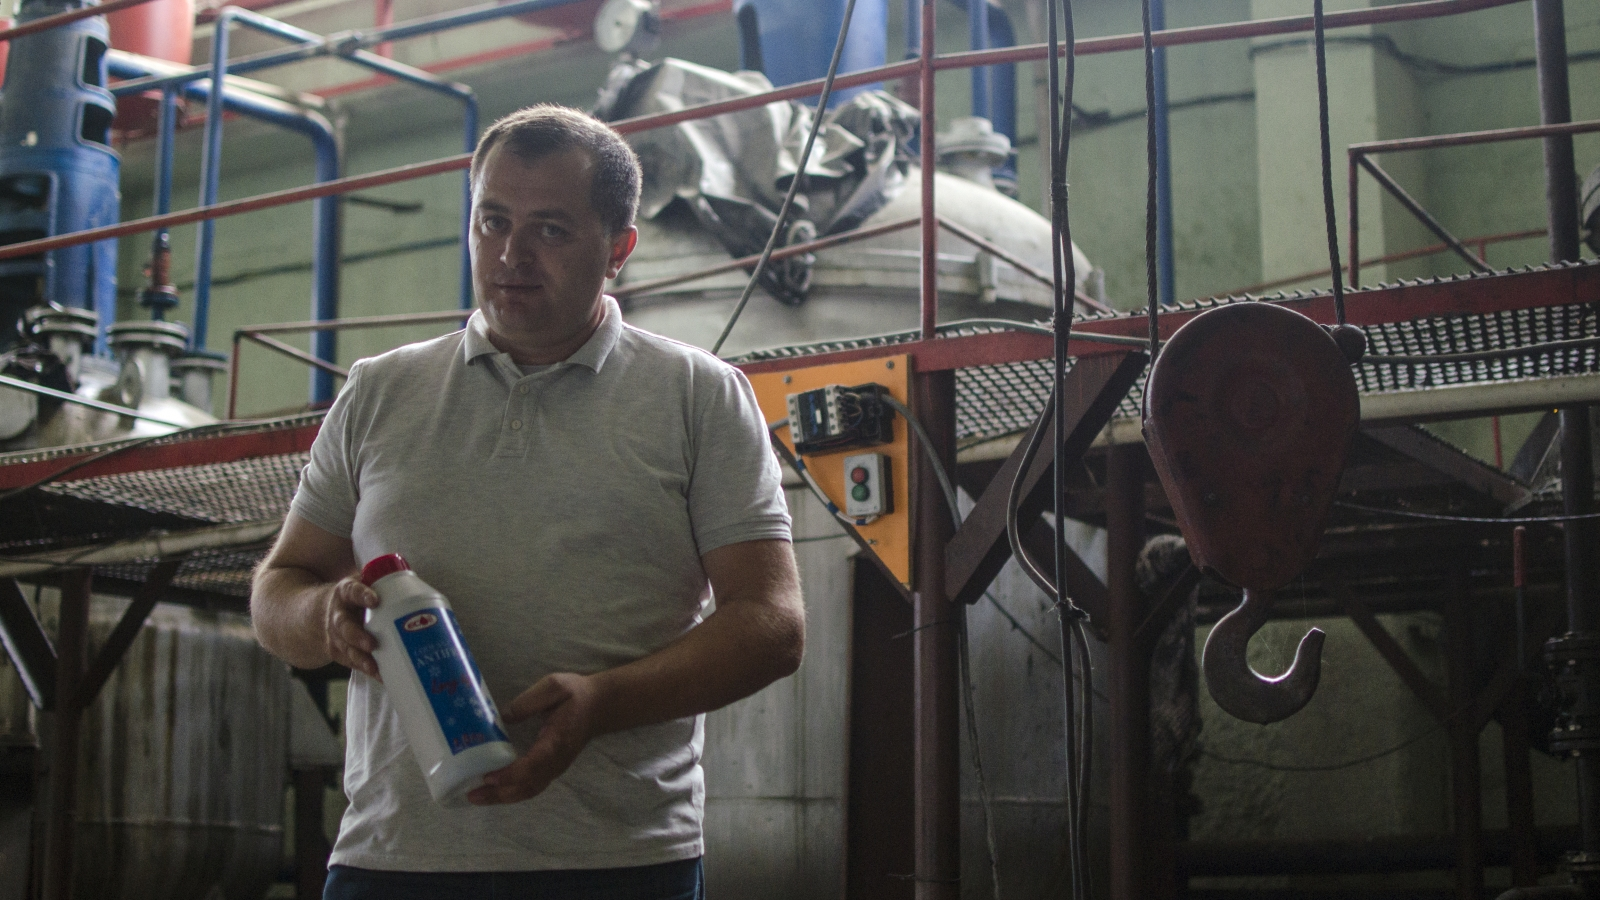 Once a doctor, 41 year-old Avto Jvarsheishvili left his former profession behind a few years ago and took over an oil production company called EcOil